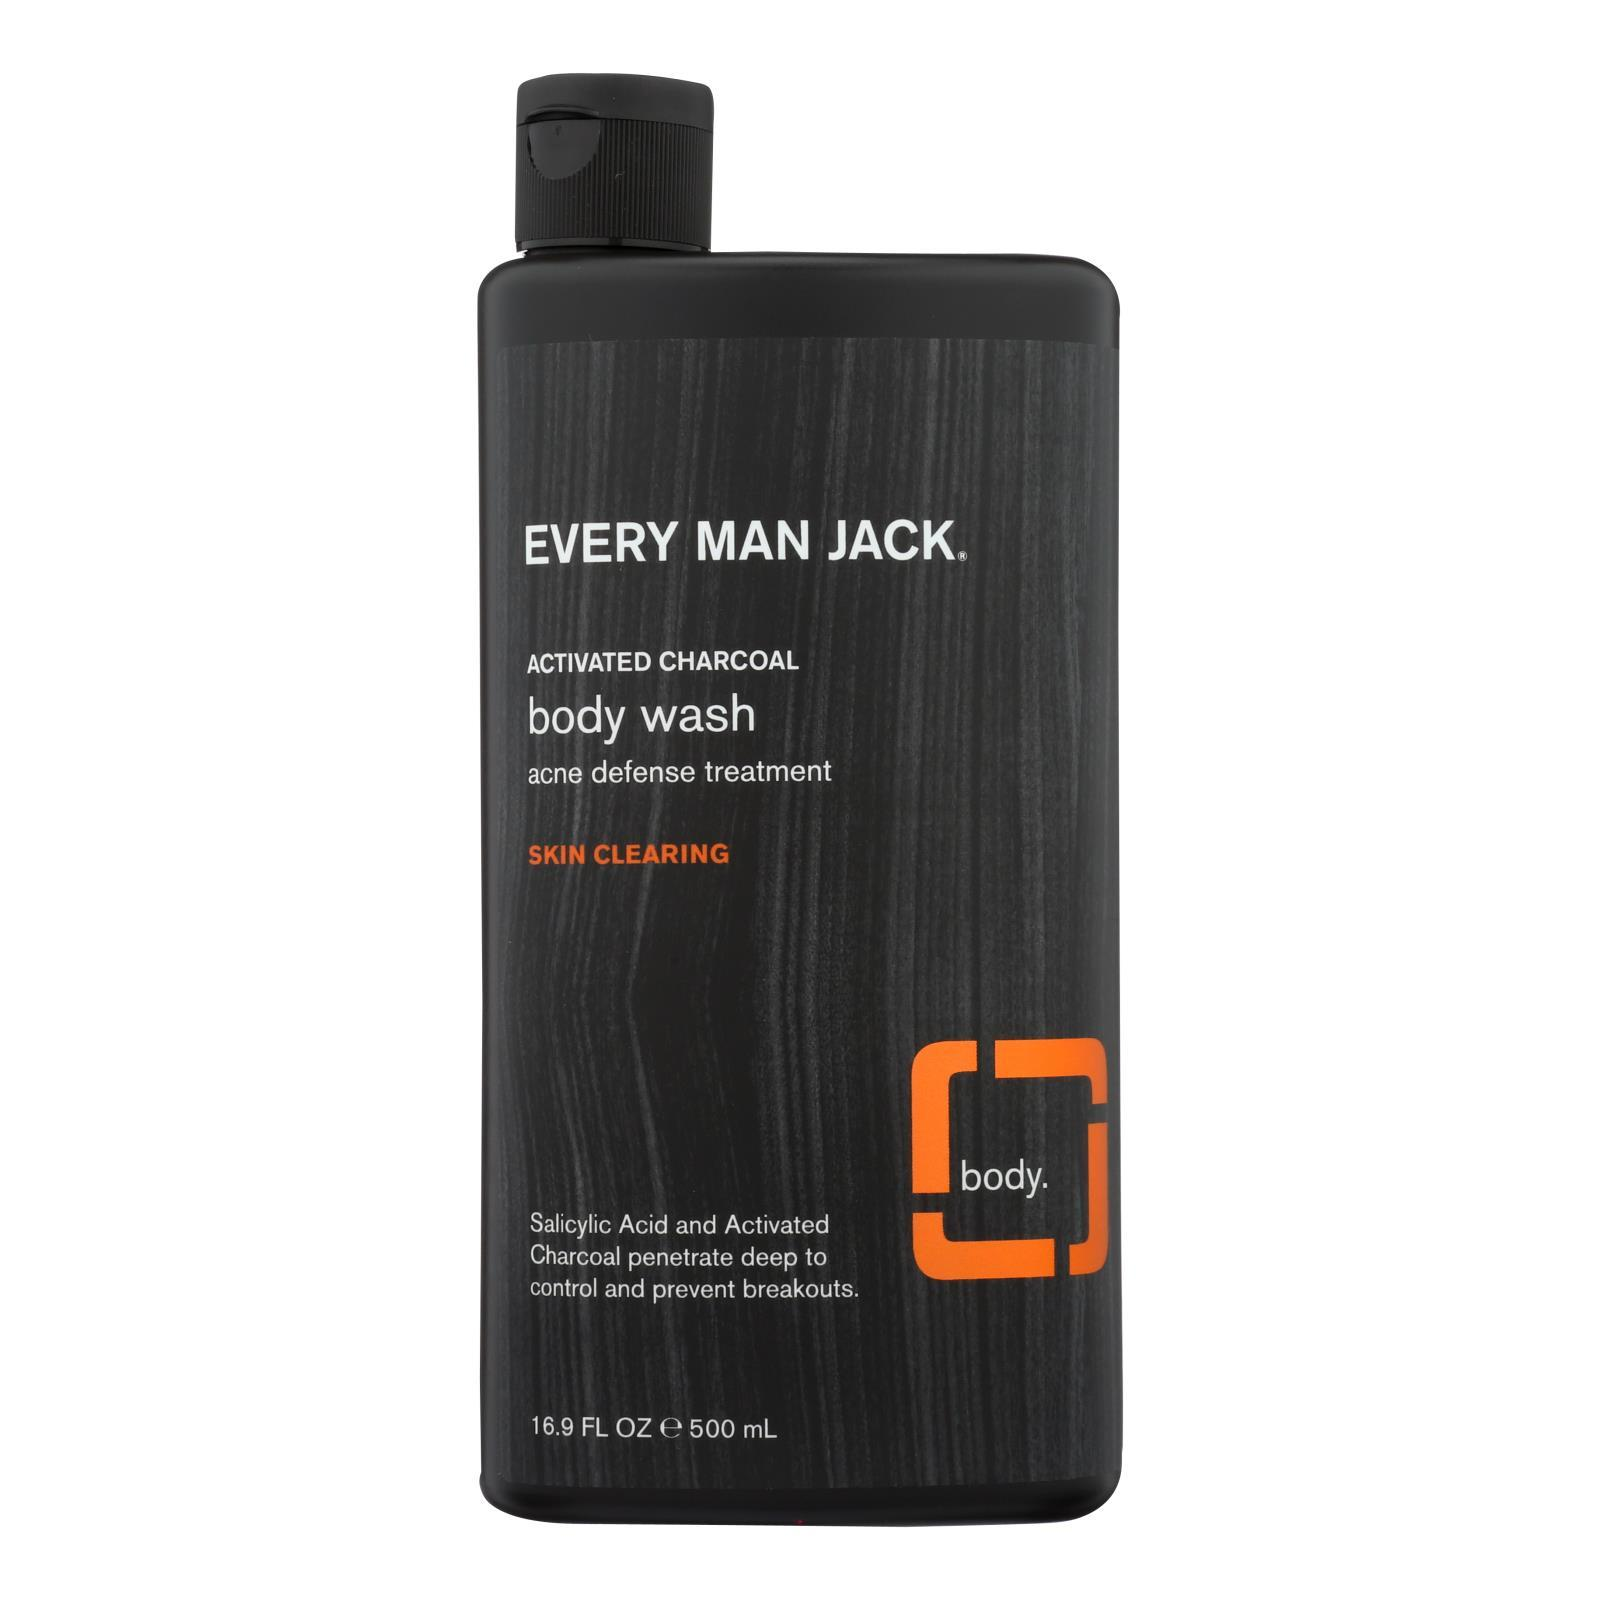 Primary image for Every Man Jack Body Wash Activated Charcoal Body Wash | Skin Clearing - Case of